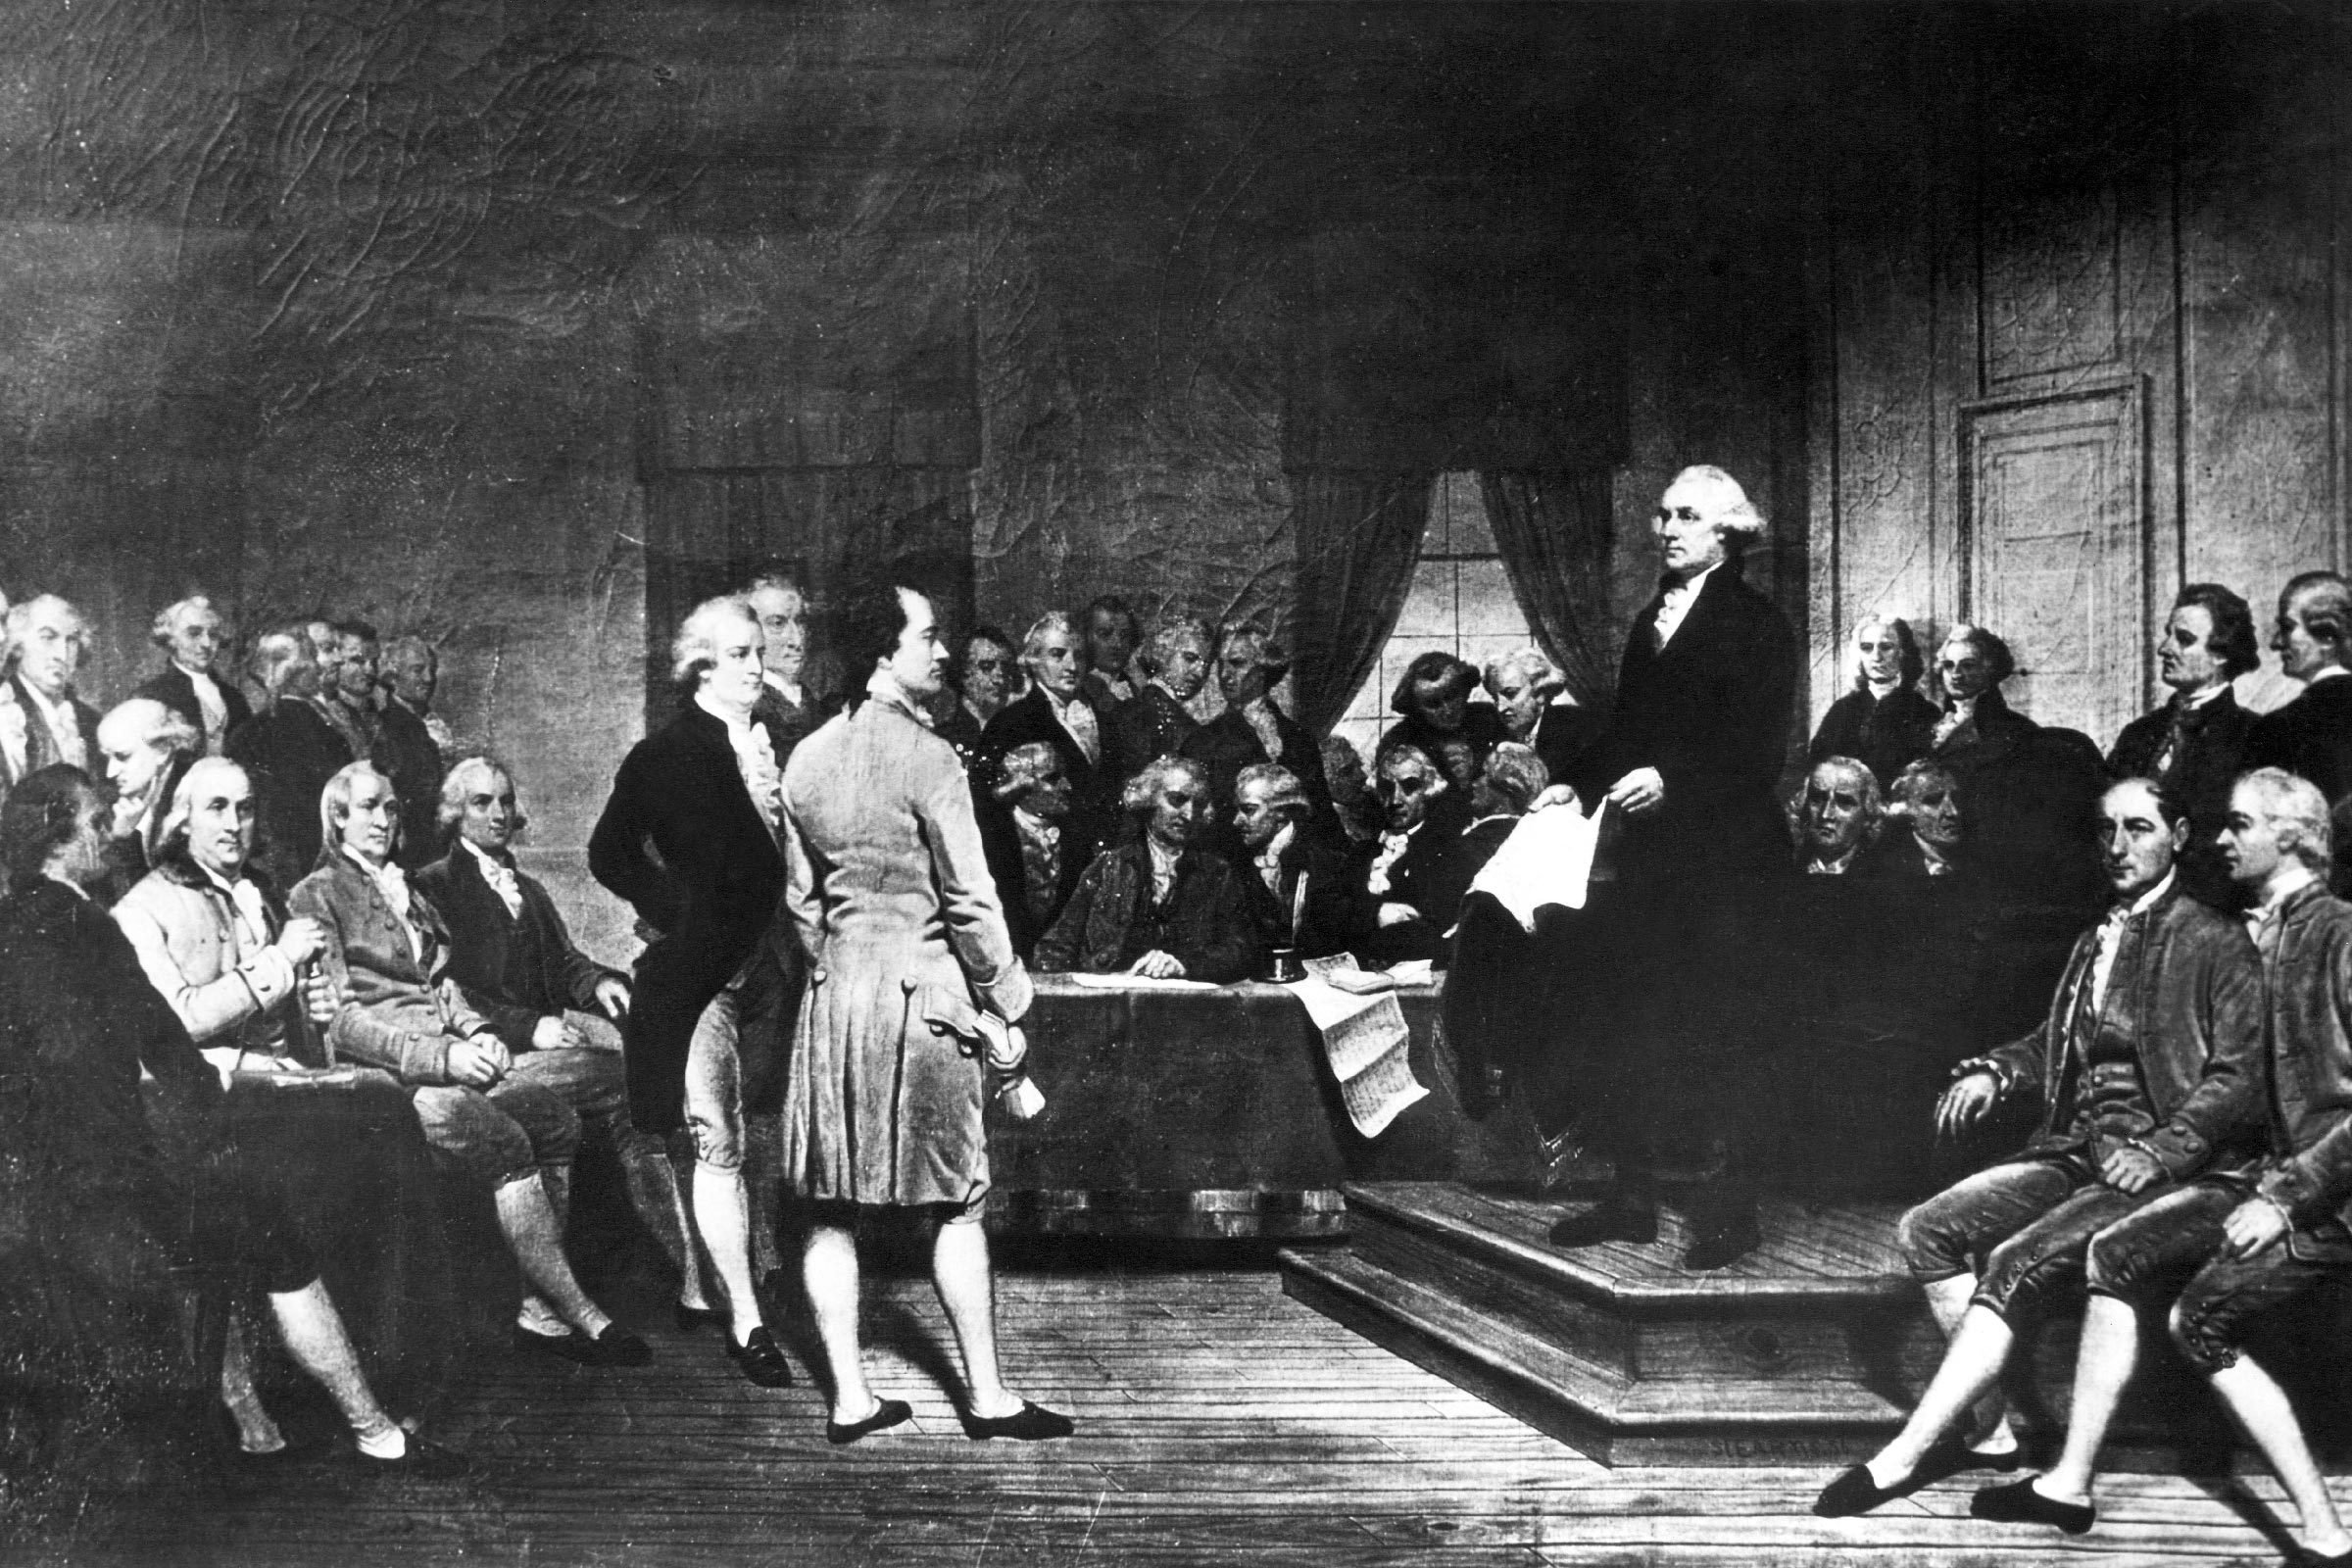 Illustration of Declaration of Independence